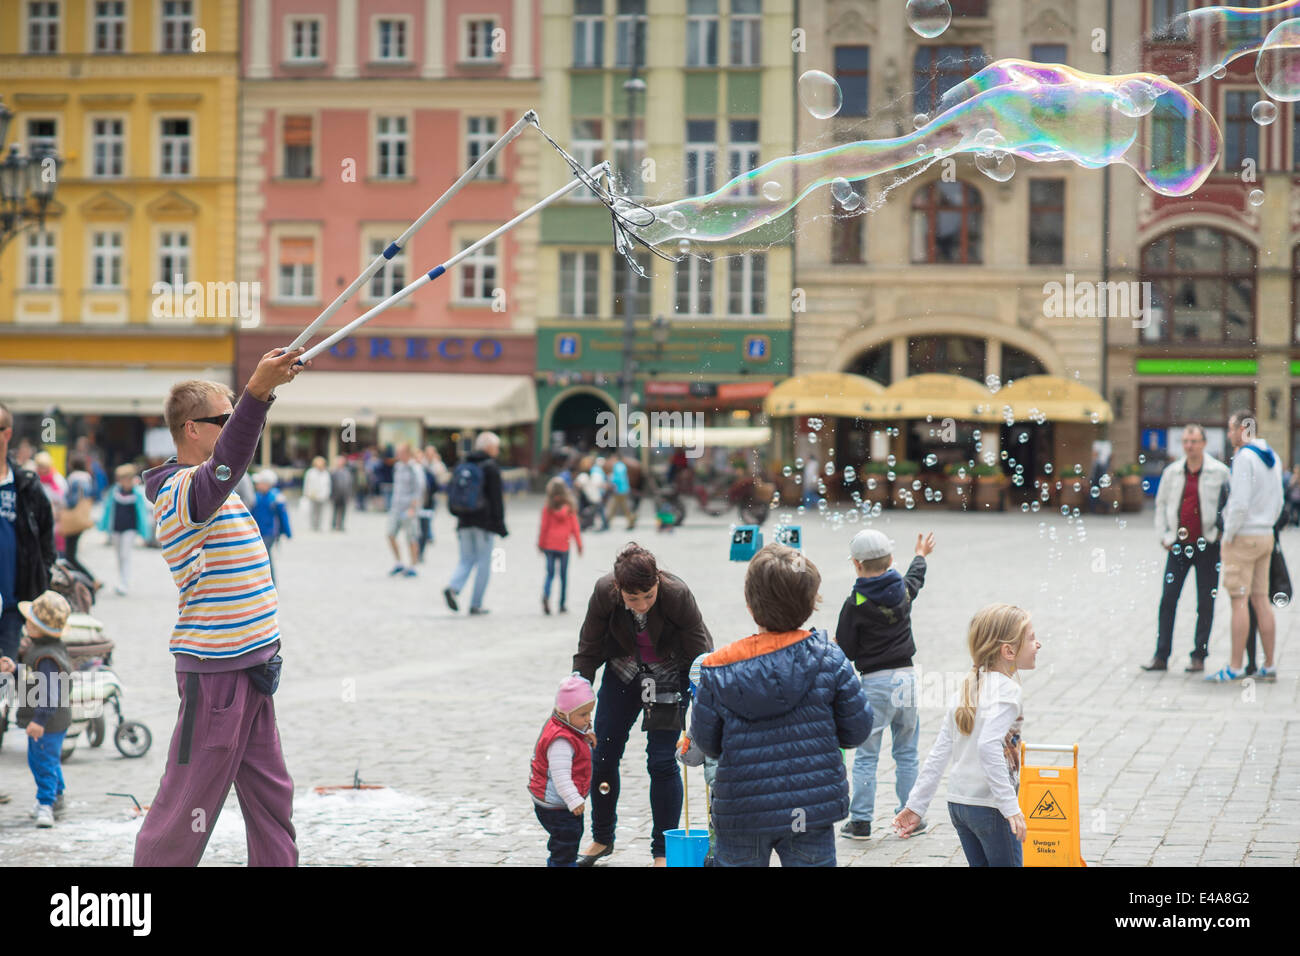 The Man letting soap bubbles Old Market Wroclaw - Stock Image